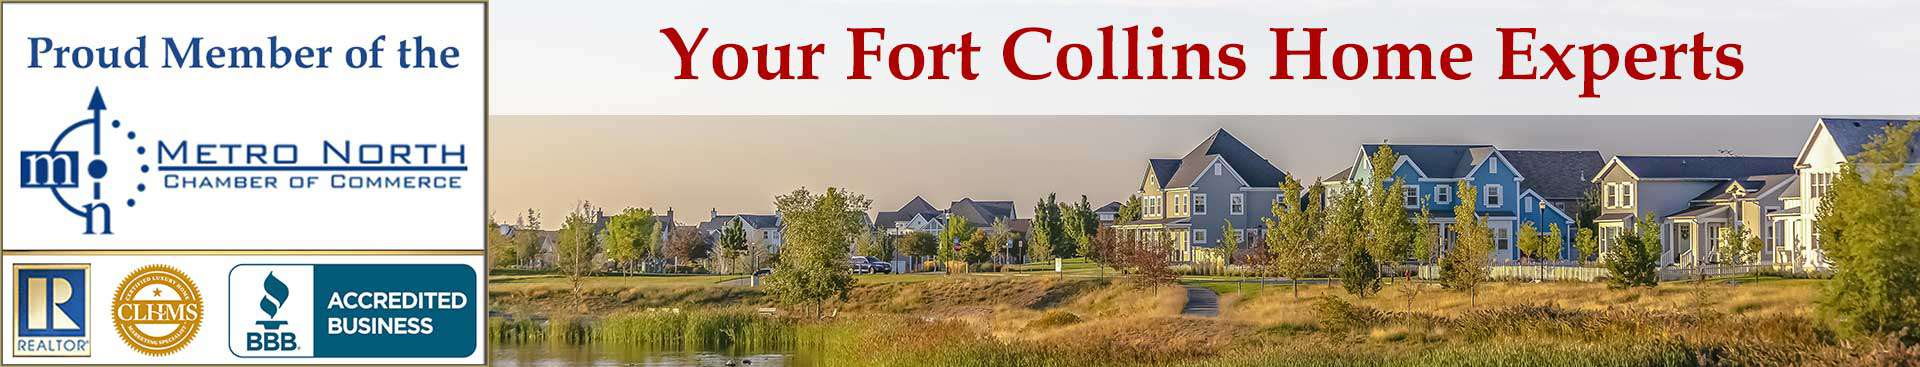 Fort Collins Accreditations Banner